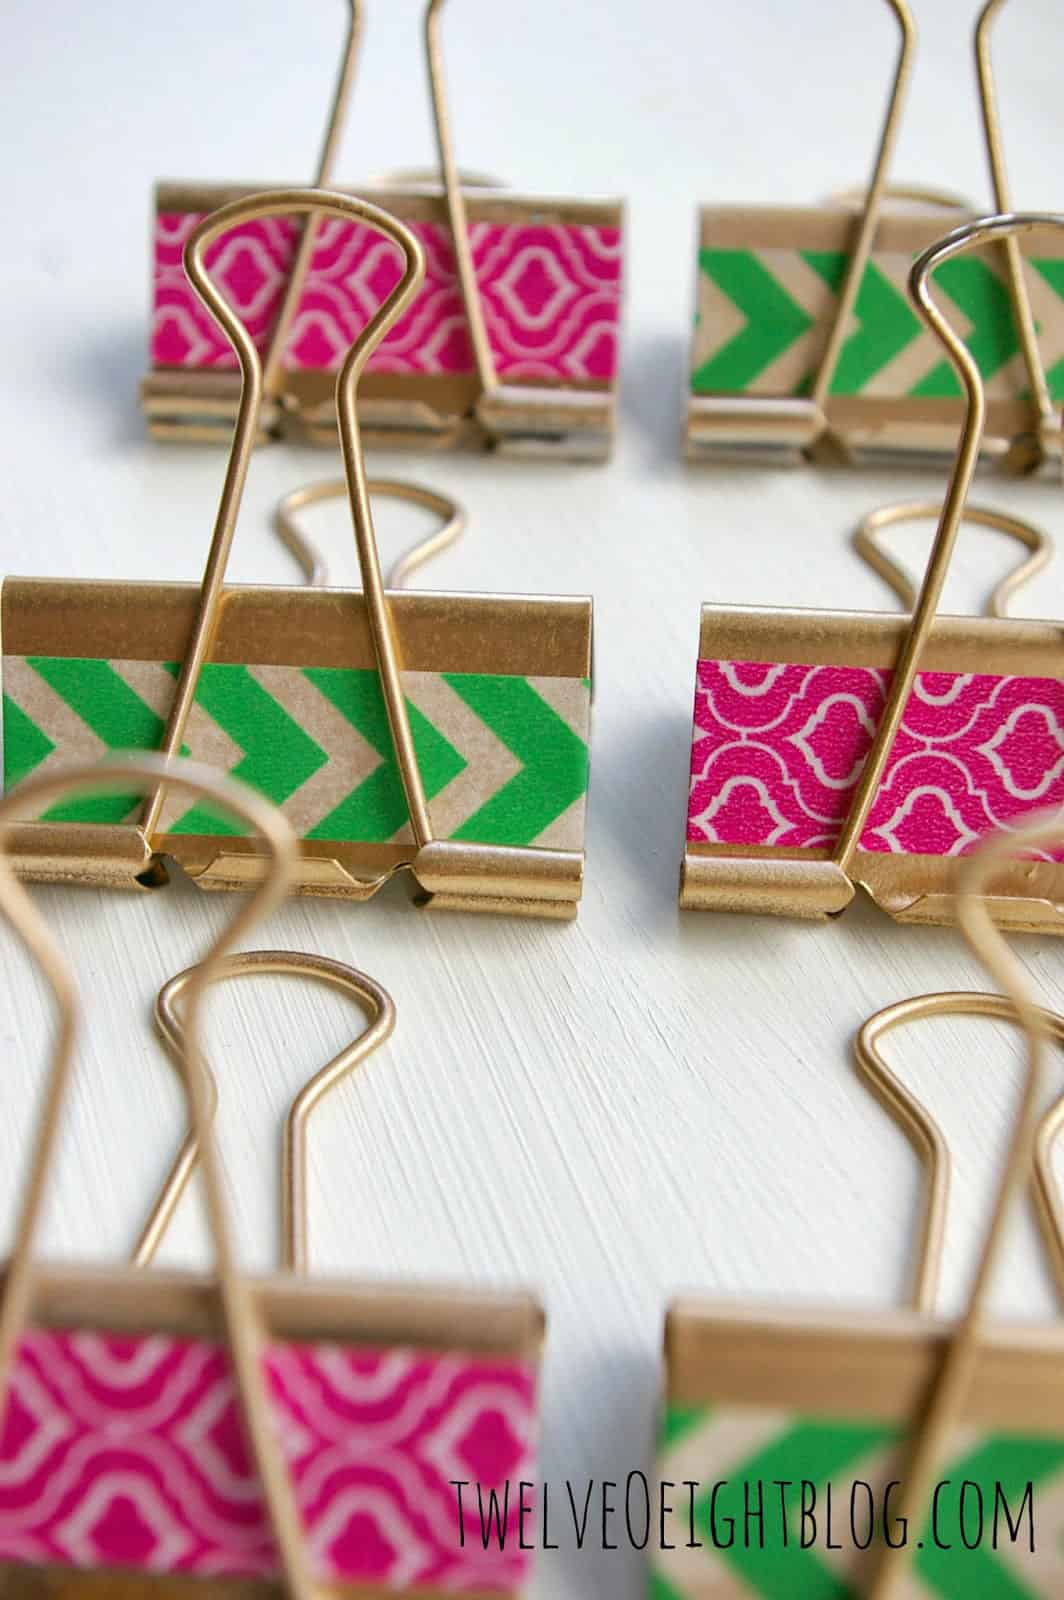 Gilded Washi {Dollar Store} Binder Clips